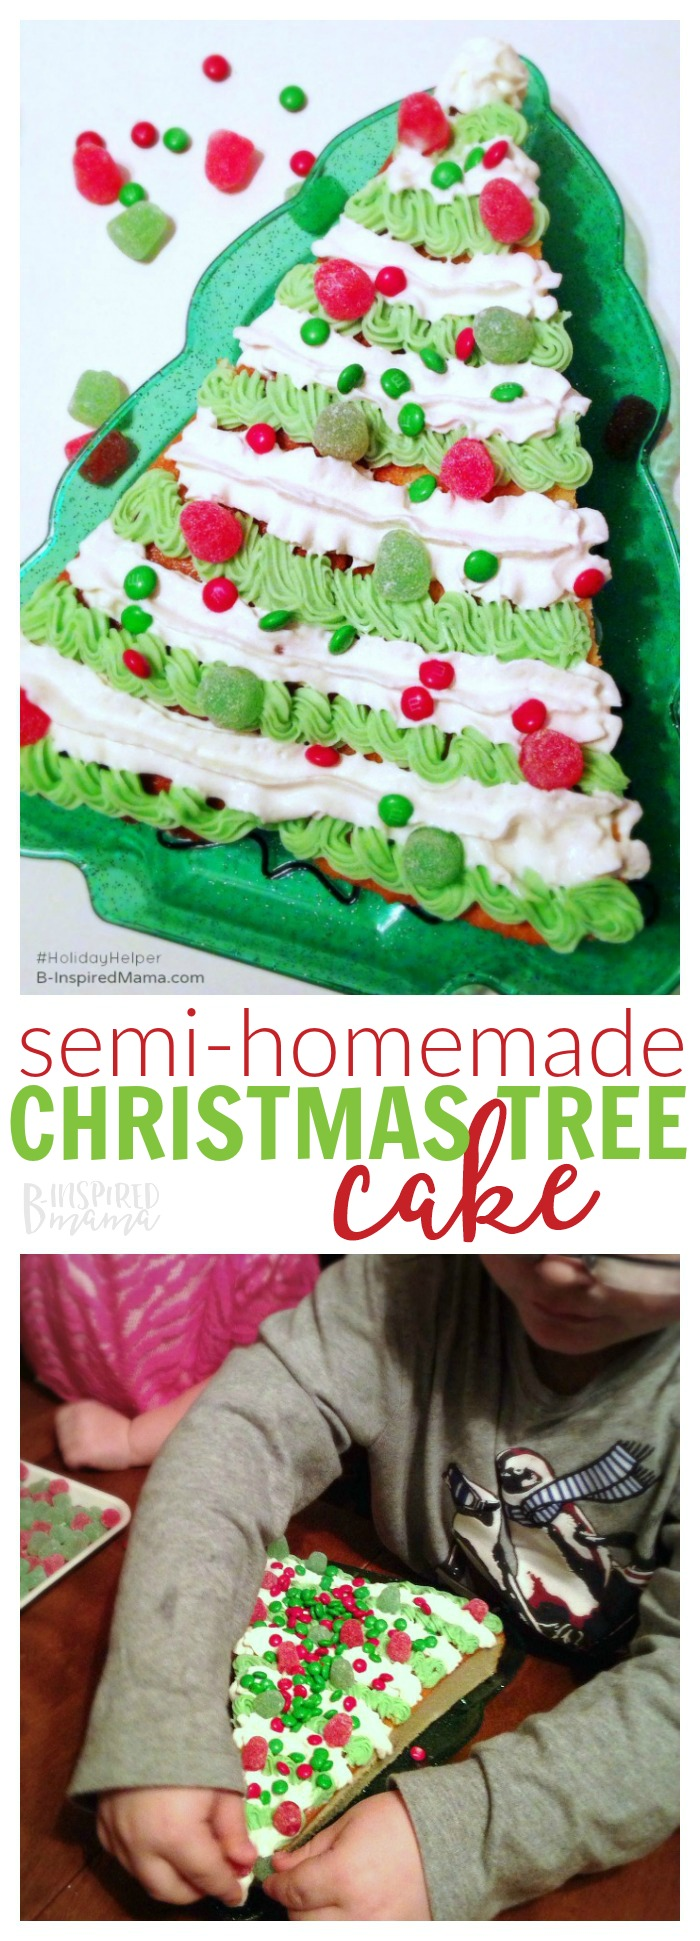 A Semi-Homemade Christmas Tree Christmas Cake - So easy the kids can do it!